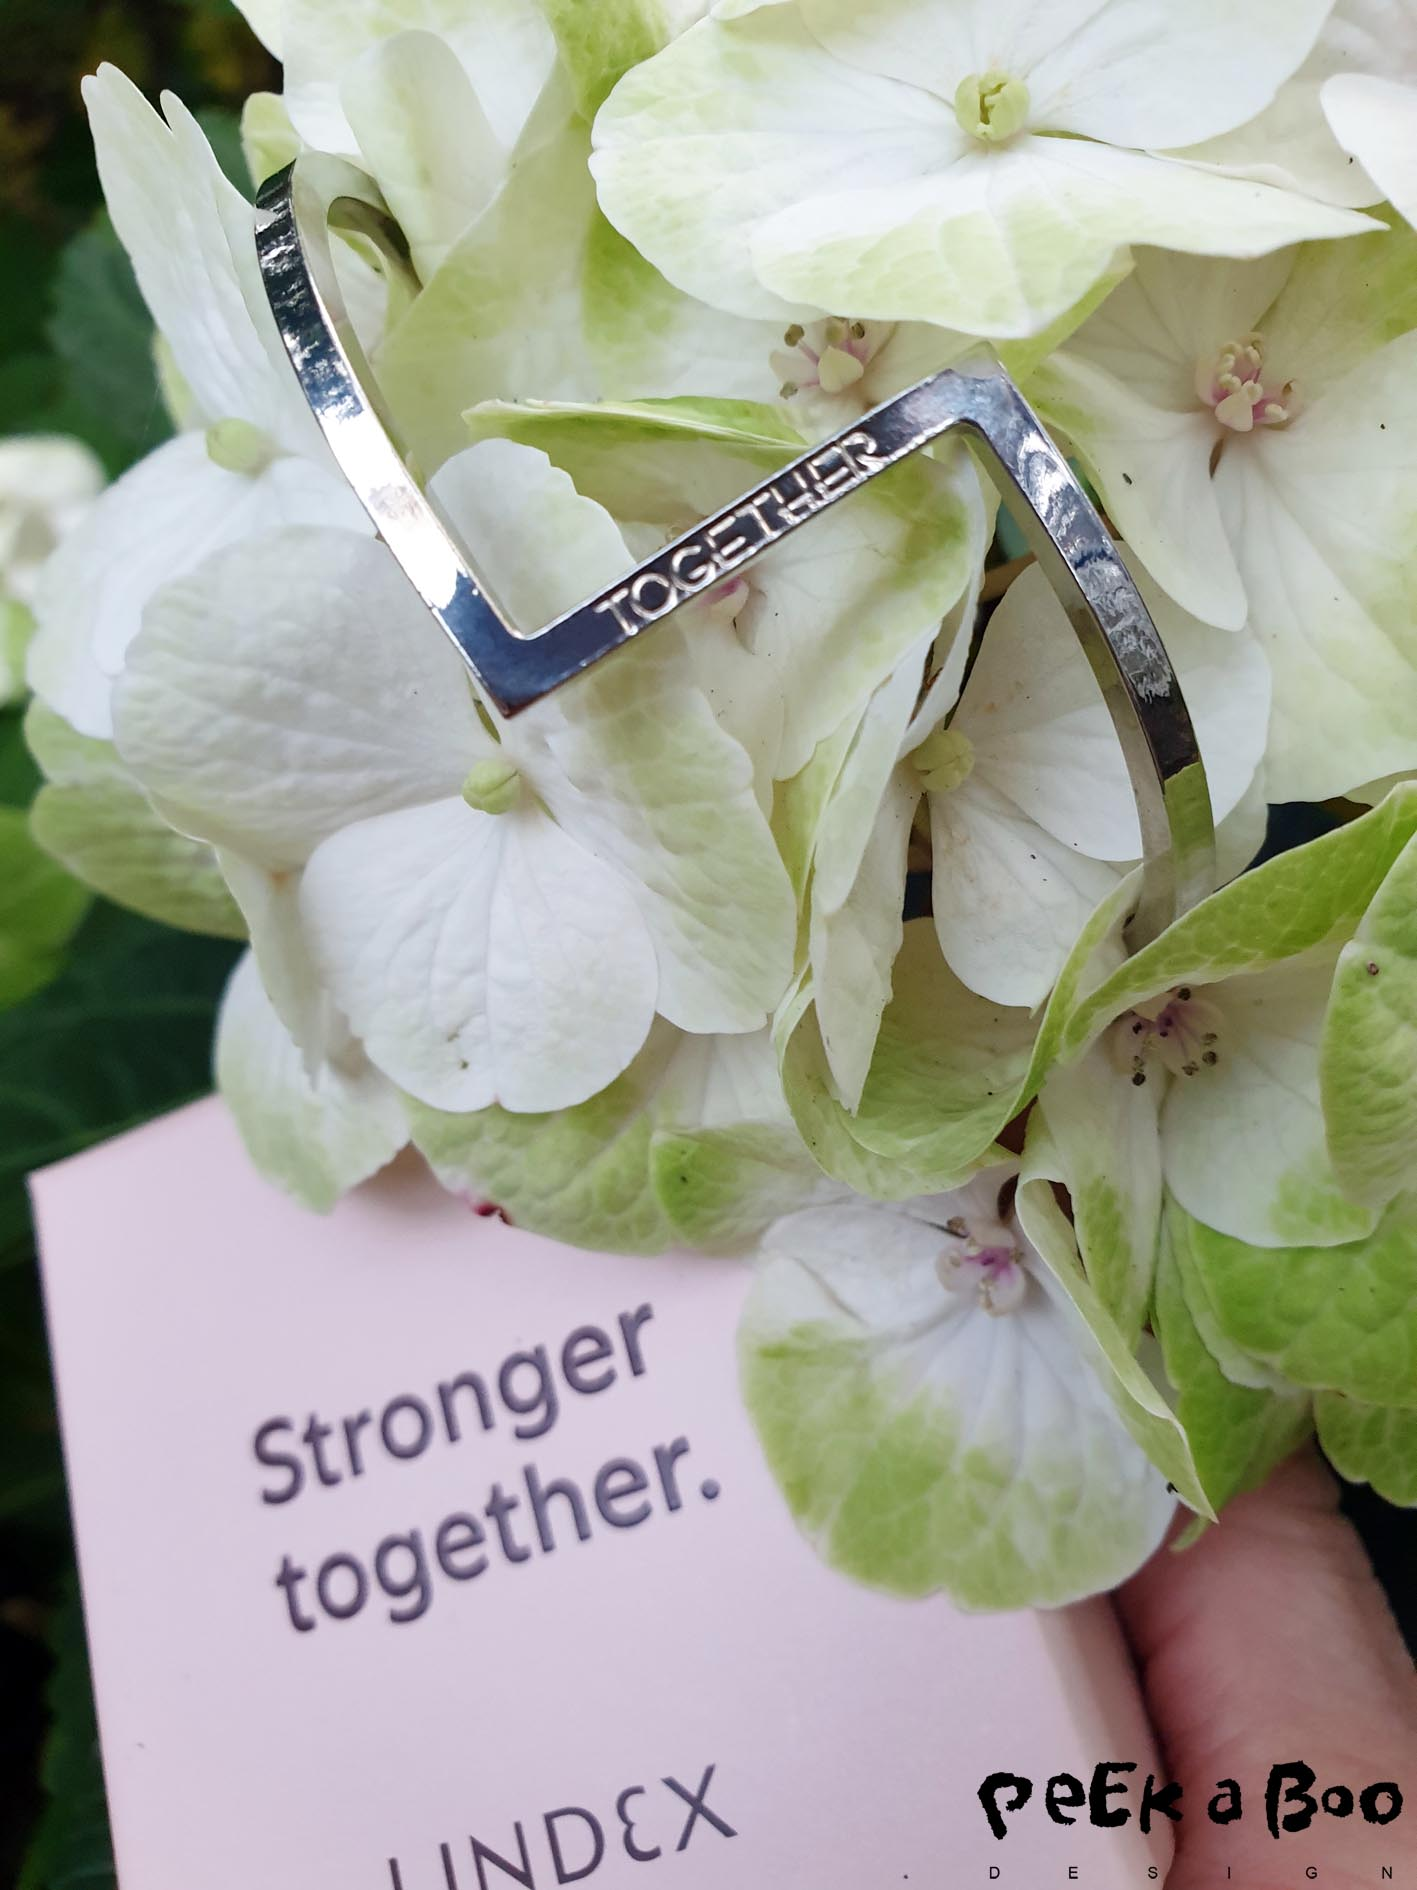 "I bought this pretty bracelet with the text together....and I really like the quote ""Stronger together"" because that is so true."